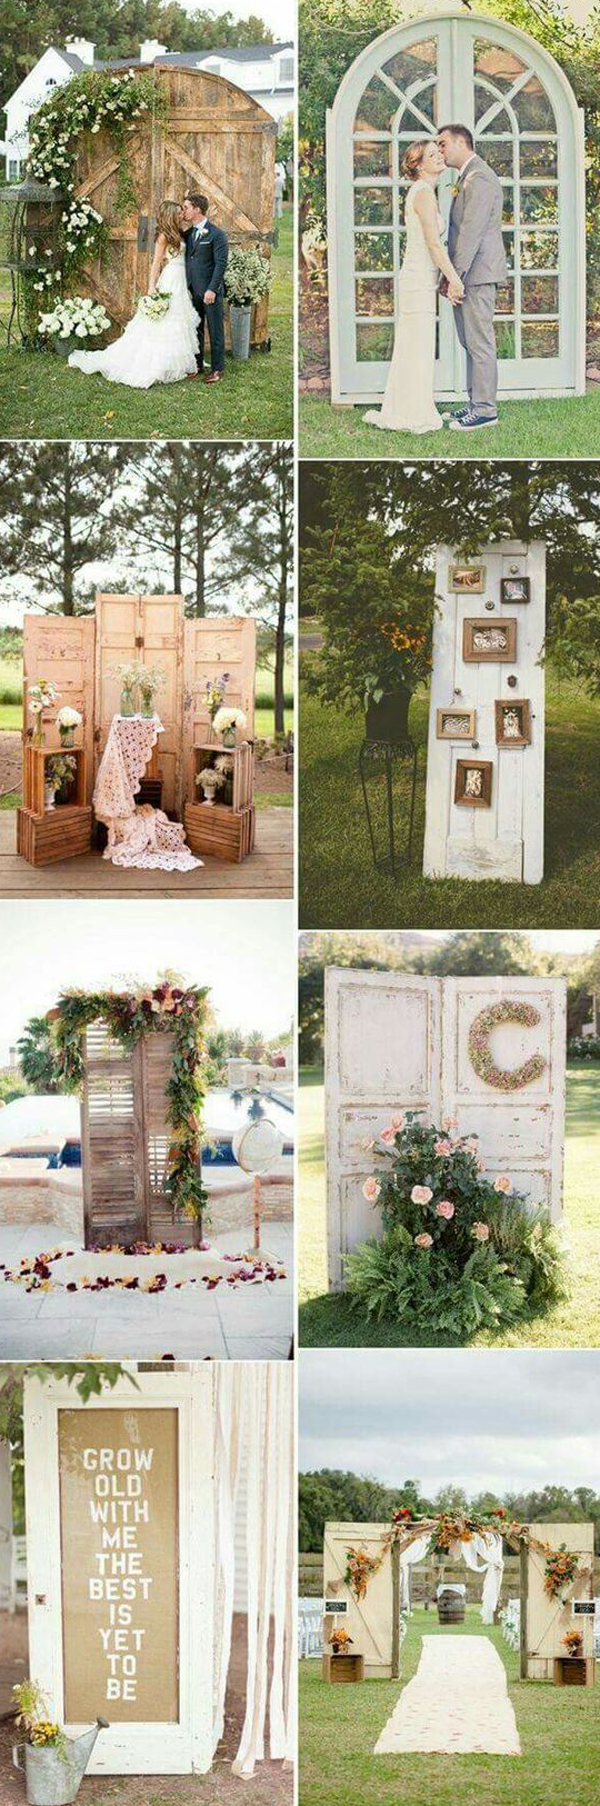 You Might Also Like 22 Rustic Country Wedding Table Decorations